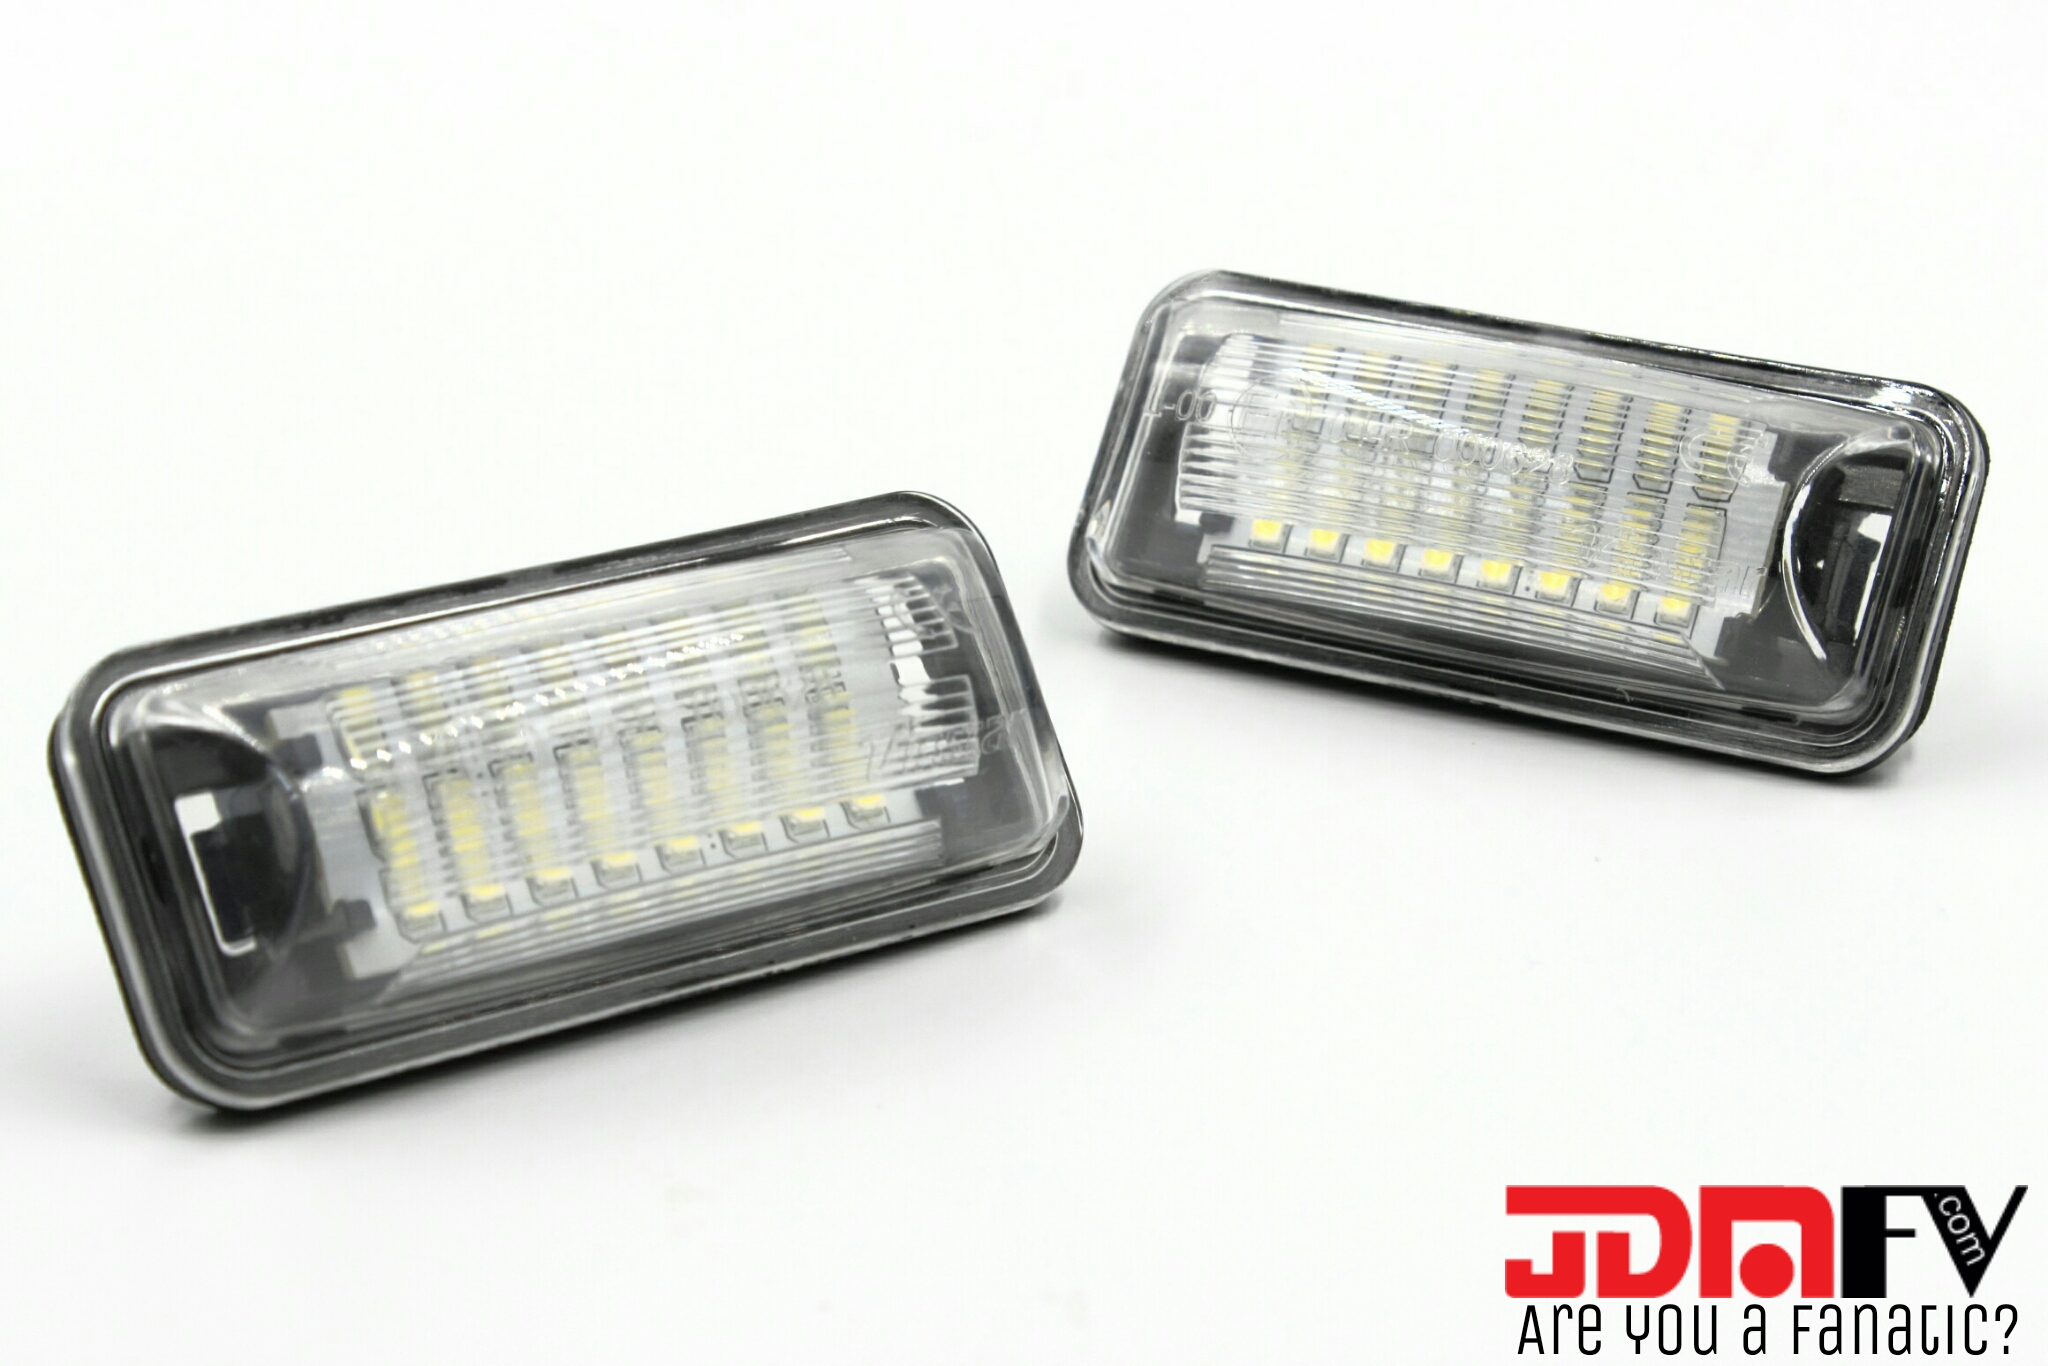 brz-frs-license-plate-led-lights-jdmfv.jpg